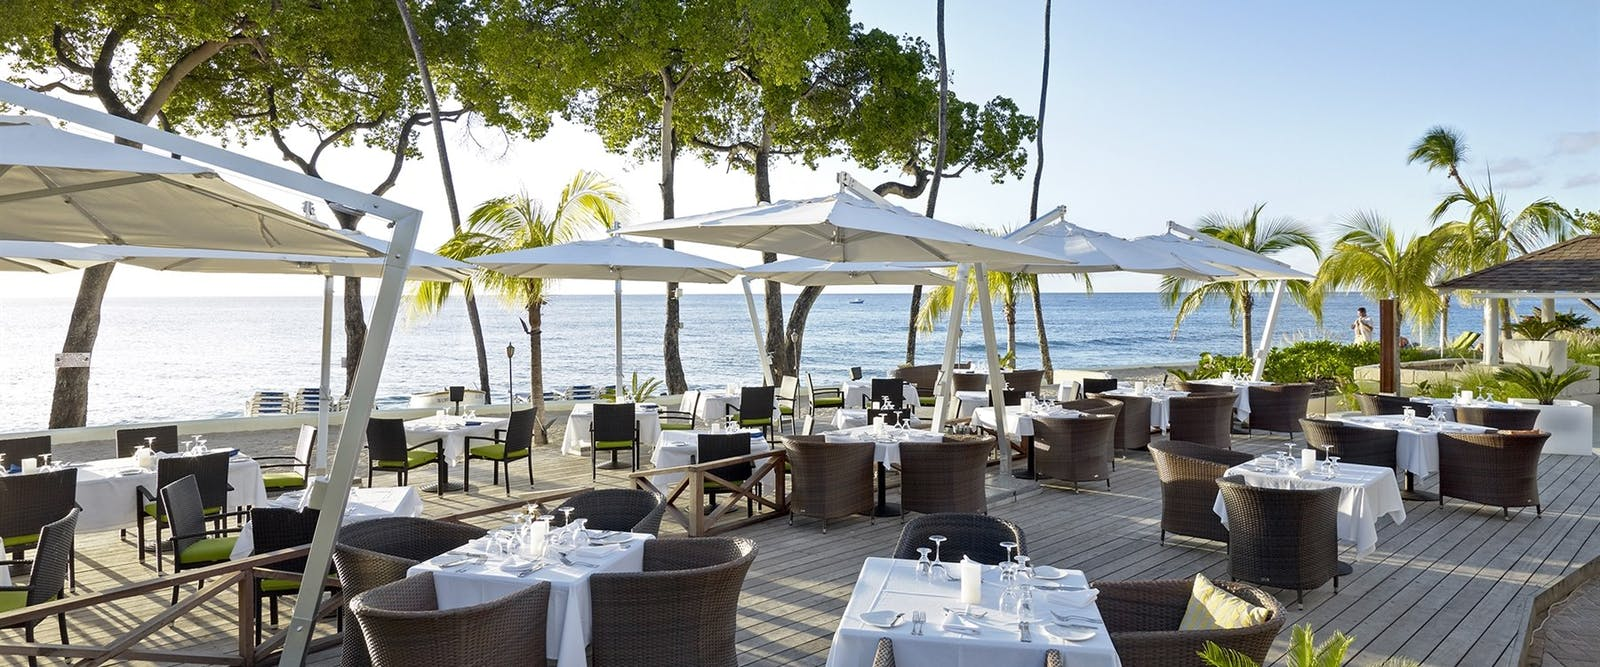 Restaurant at Tamarind by Elegant Hotels, Barbados